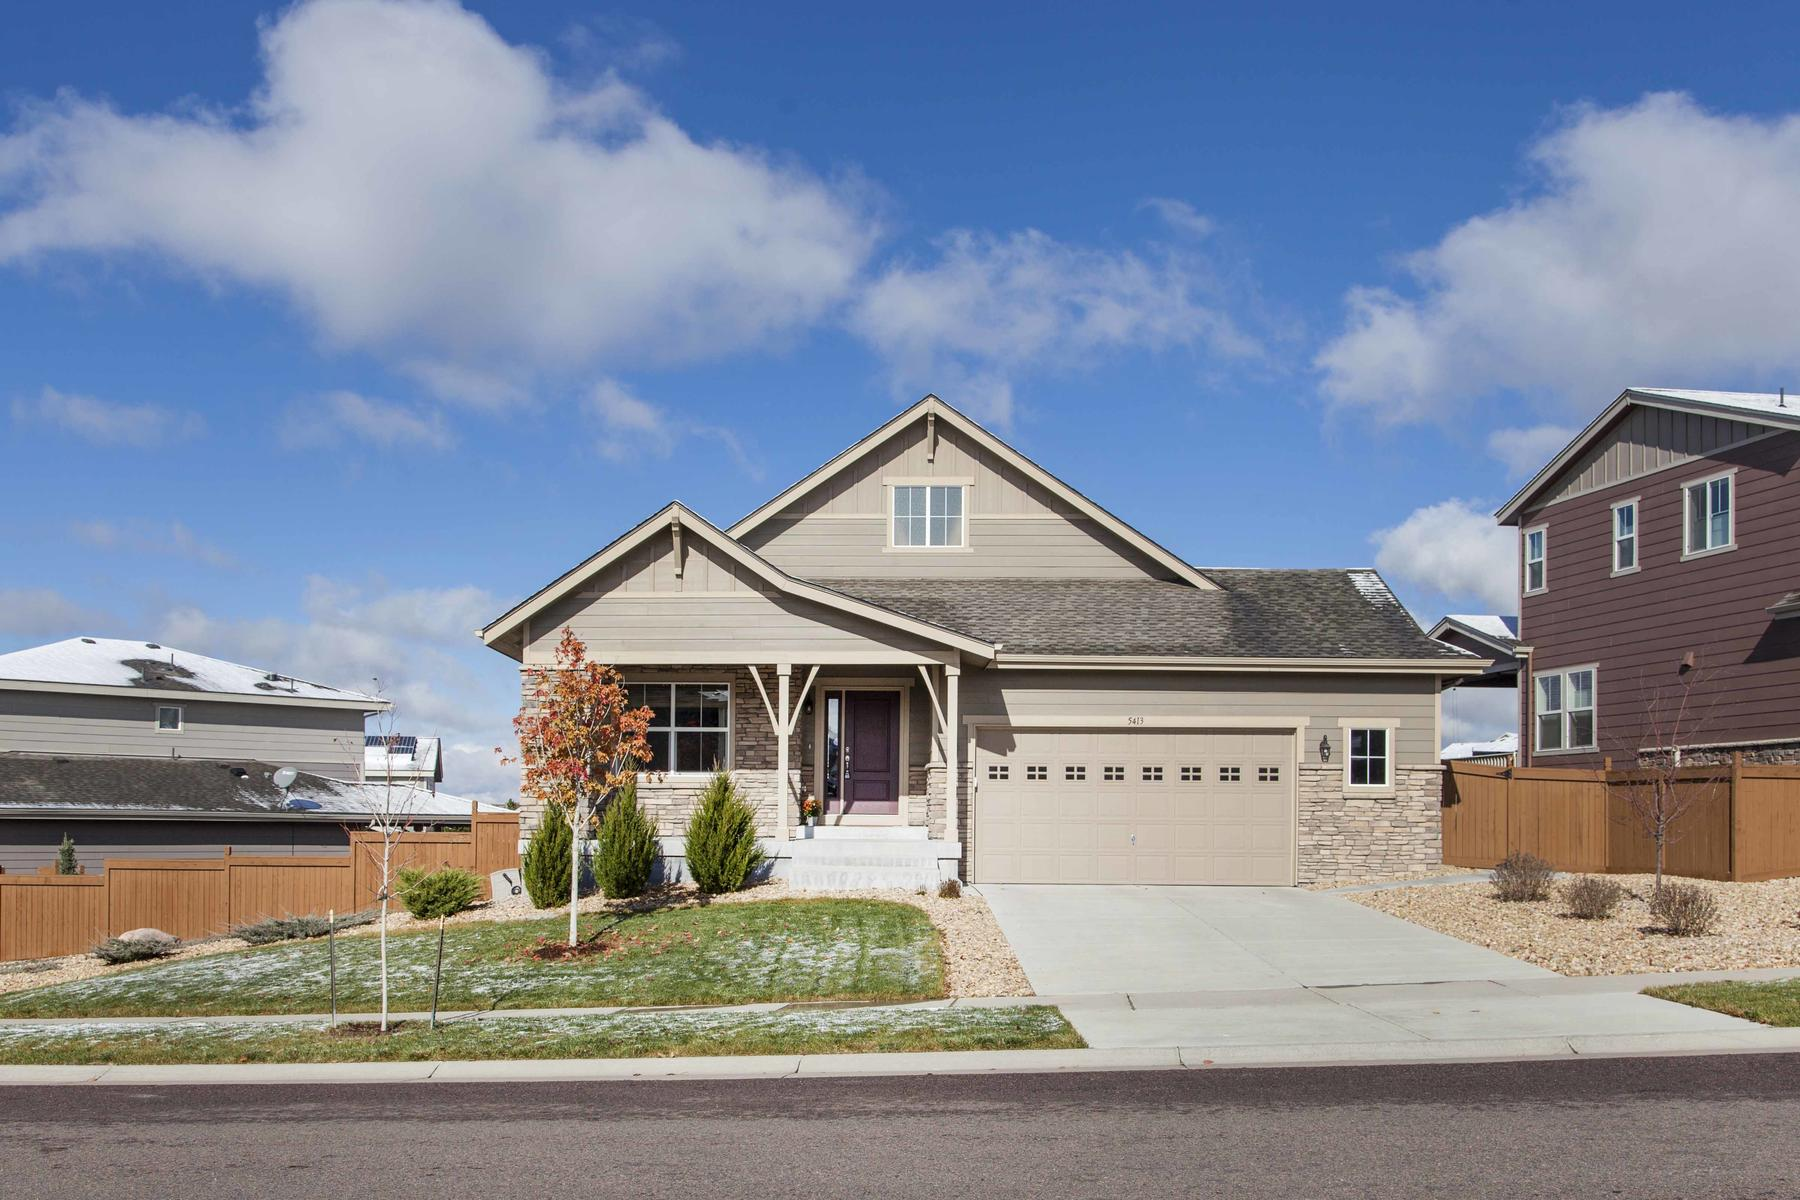 Property for Active at This Home Looks Like It Has Never Been Lived In! 5413 S Granby Way Aurora, Colorado 80015 United States